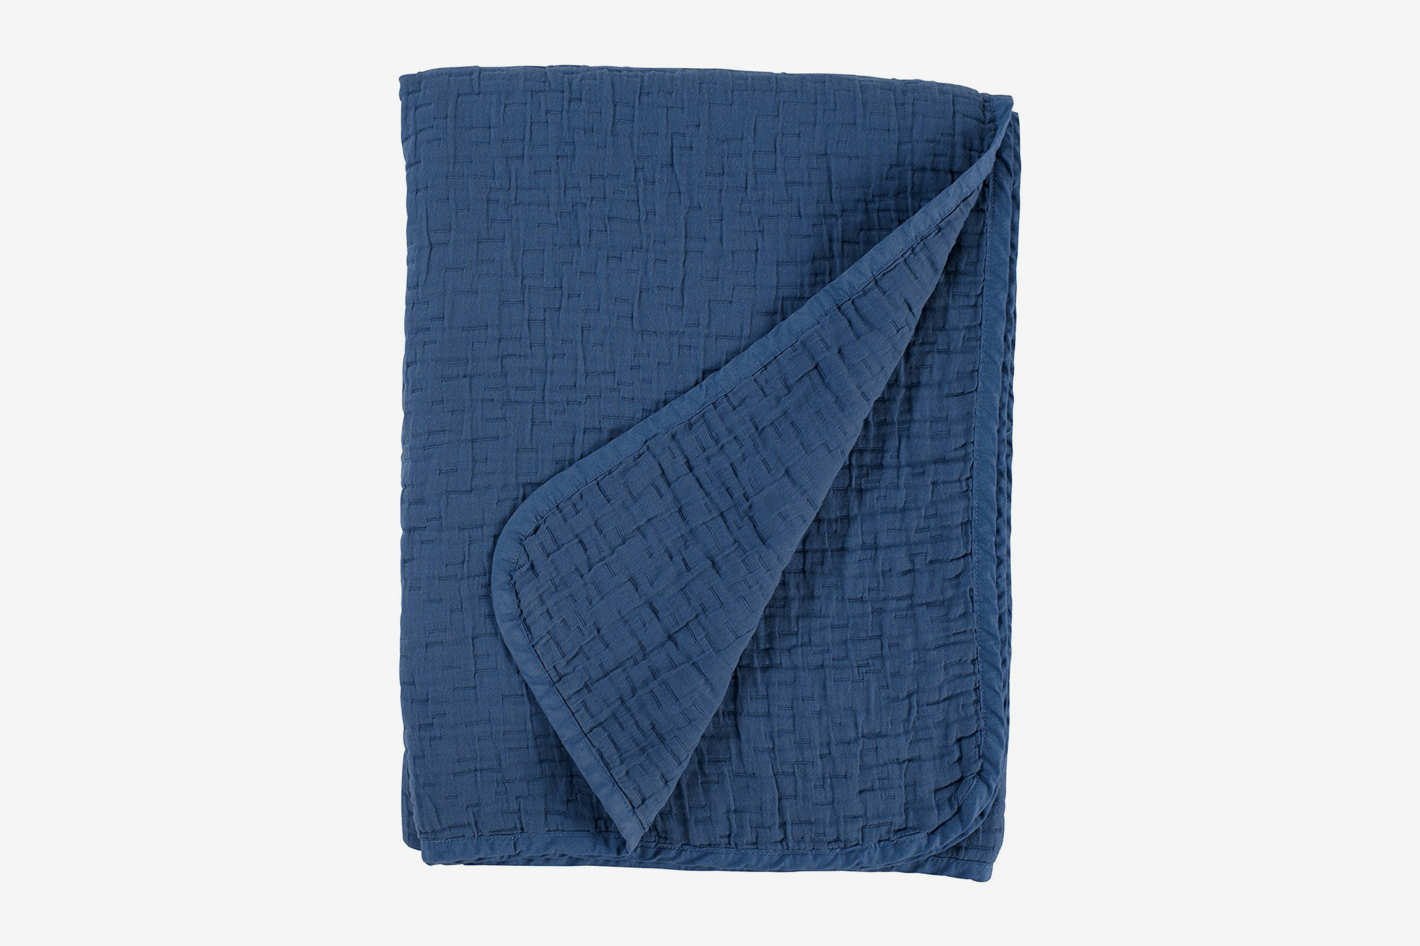 "Stone & Beam Locklar Pick-Stiched Blanket, 80"" x 60"", Navy"